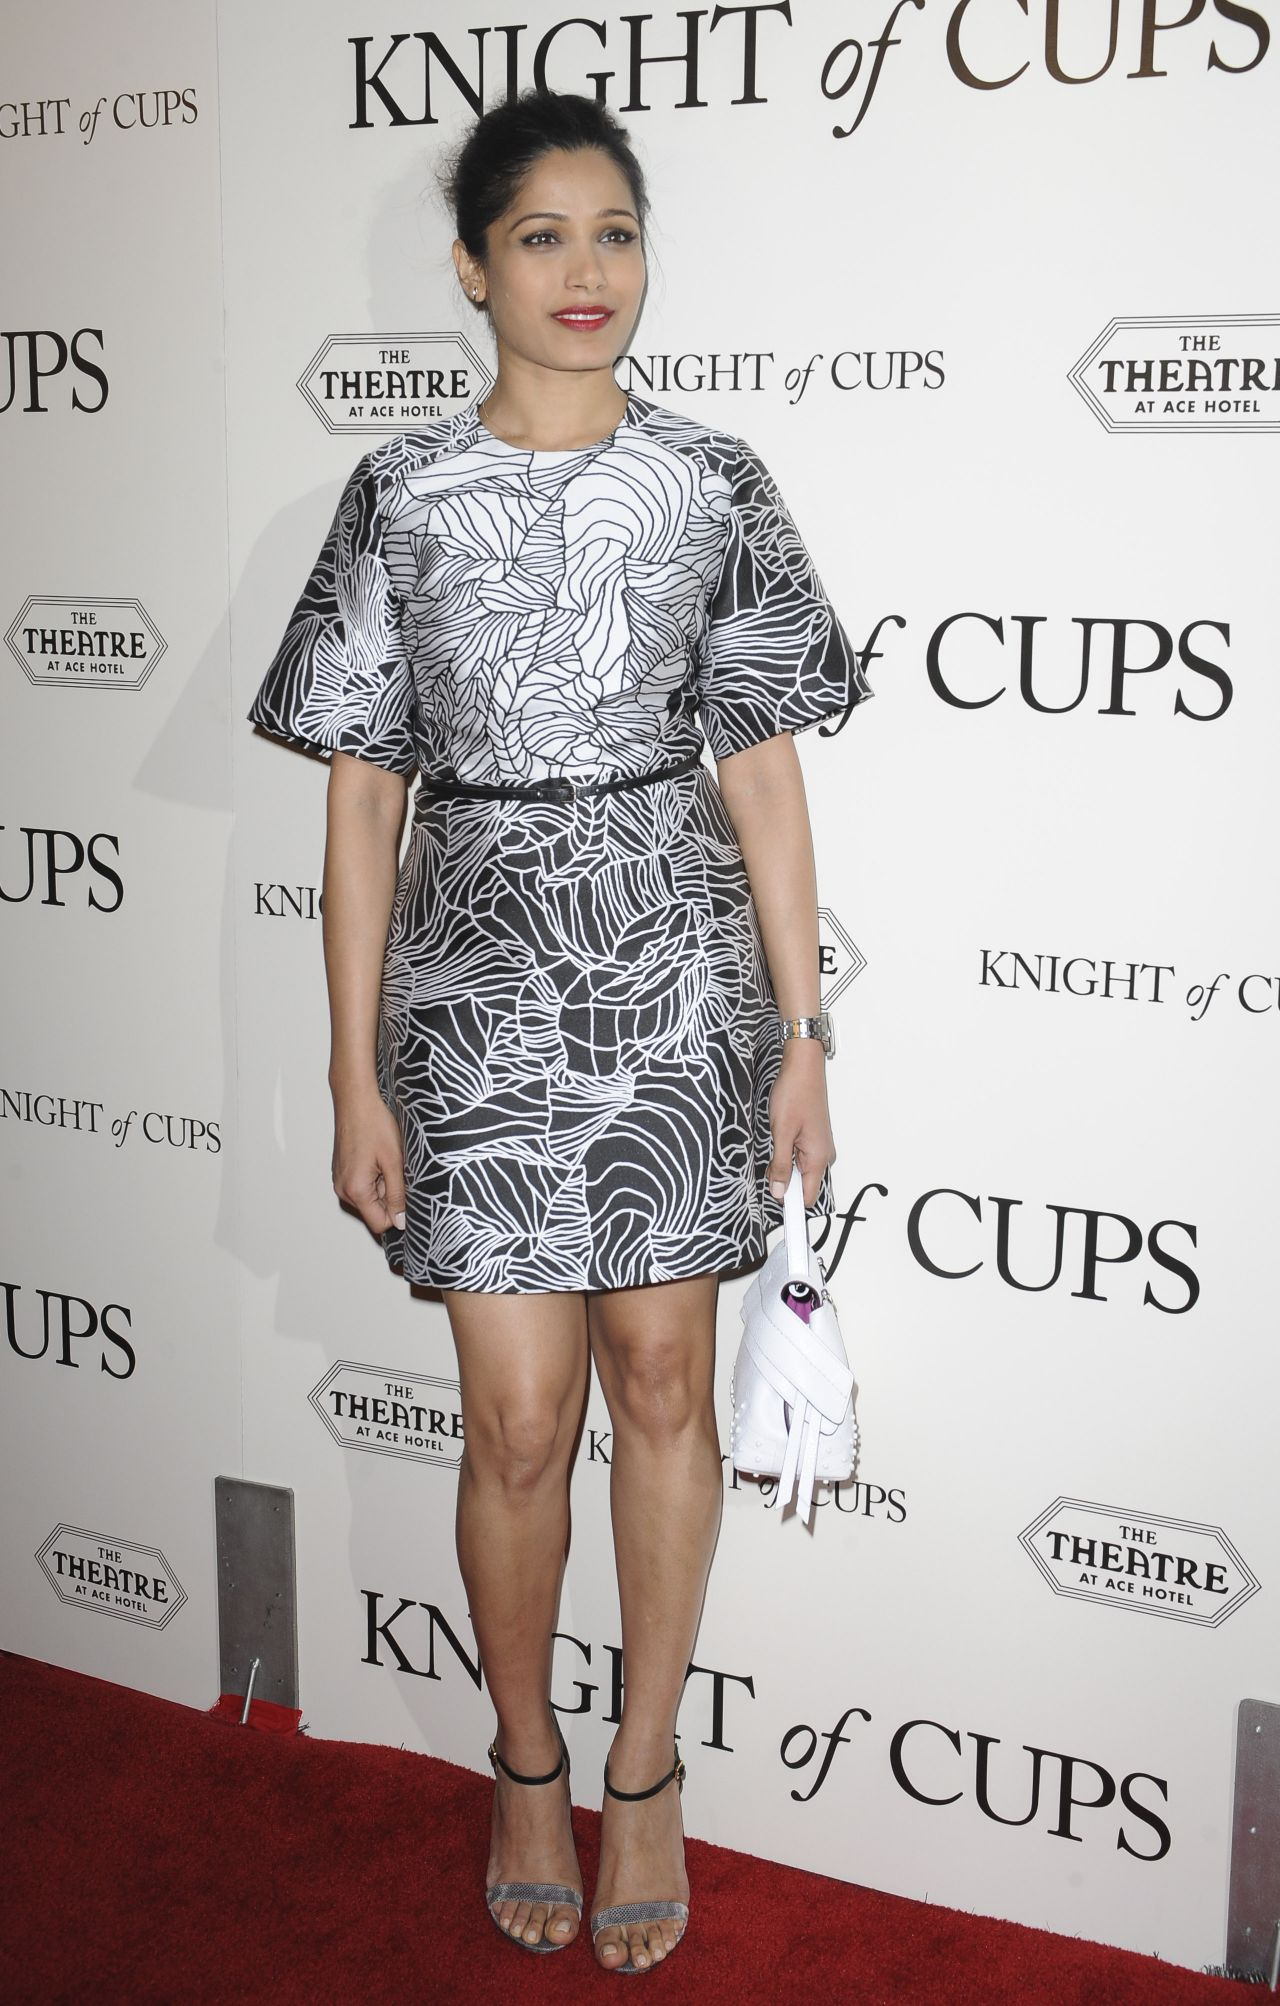 freida-pinto-knight-of-cups-premiere-in-los-angeles-ca-1